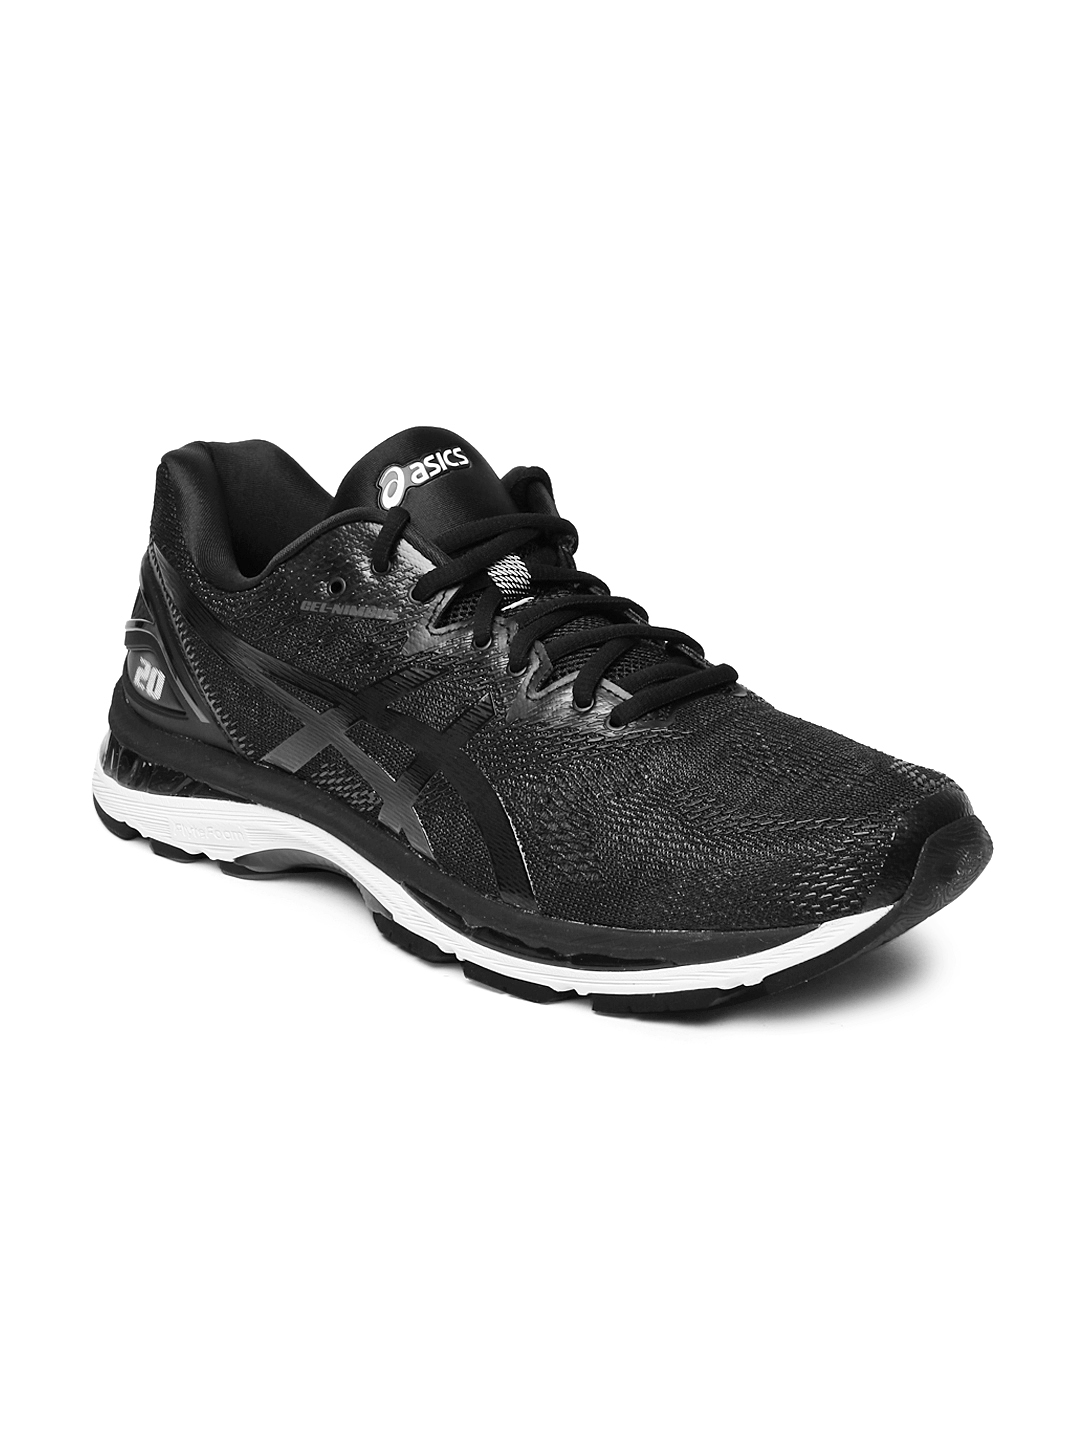 Buy ASICS Men Black GEL NIMBUS 20 Running Shoes - Sports Shoes for ... 8c7c584cfc